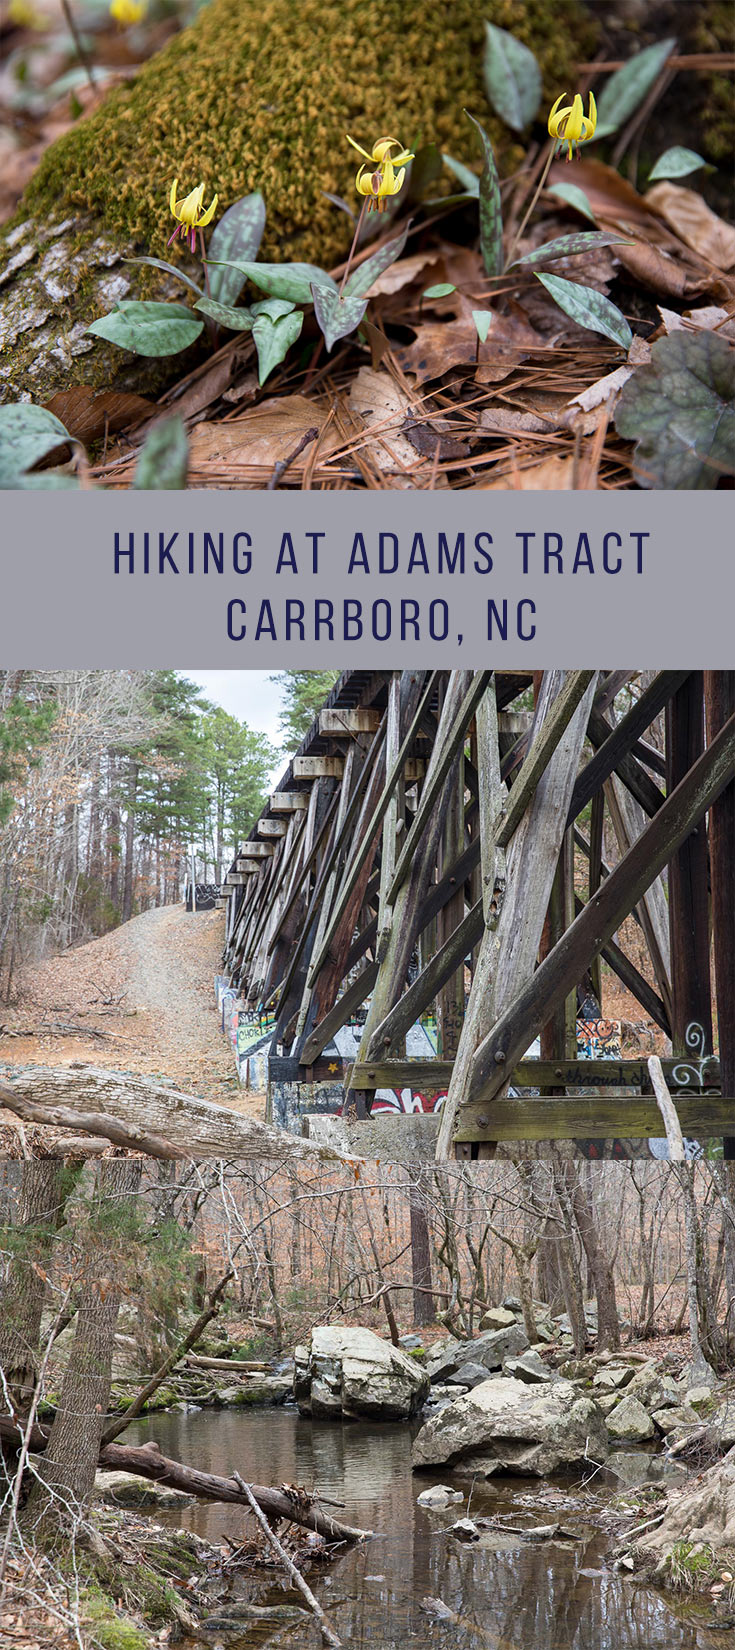 Adams Tract in Carrboro - 27 acre woodland preserve in Carrboro offers natural trail hiking along Bolin Creek